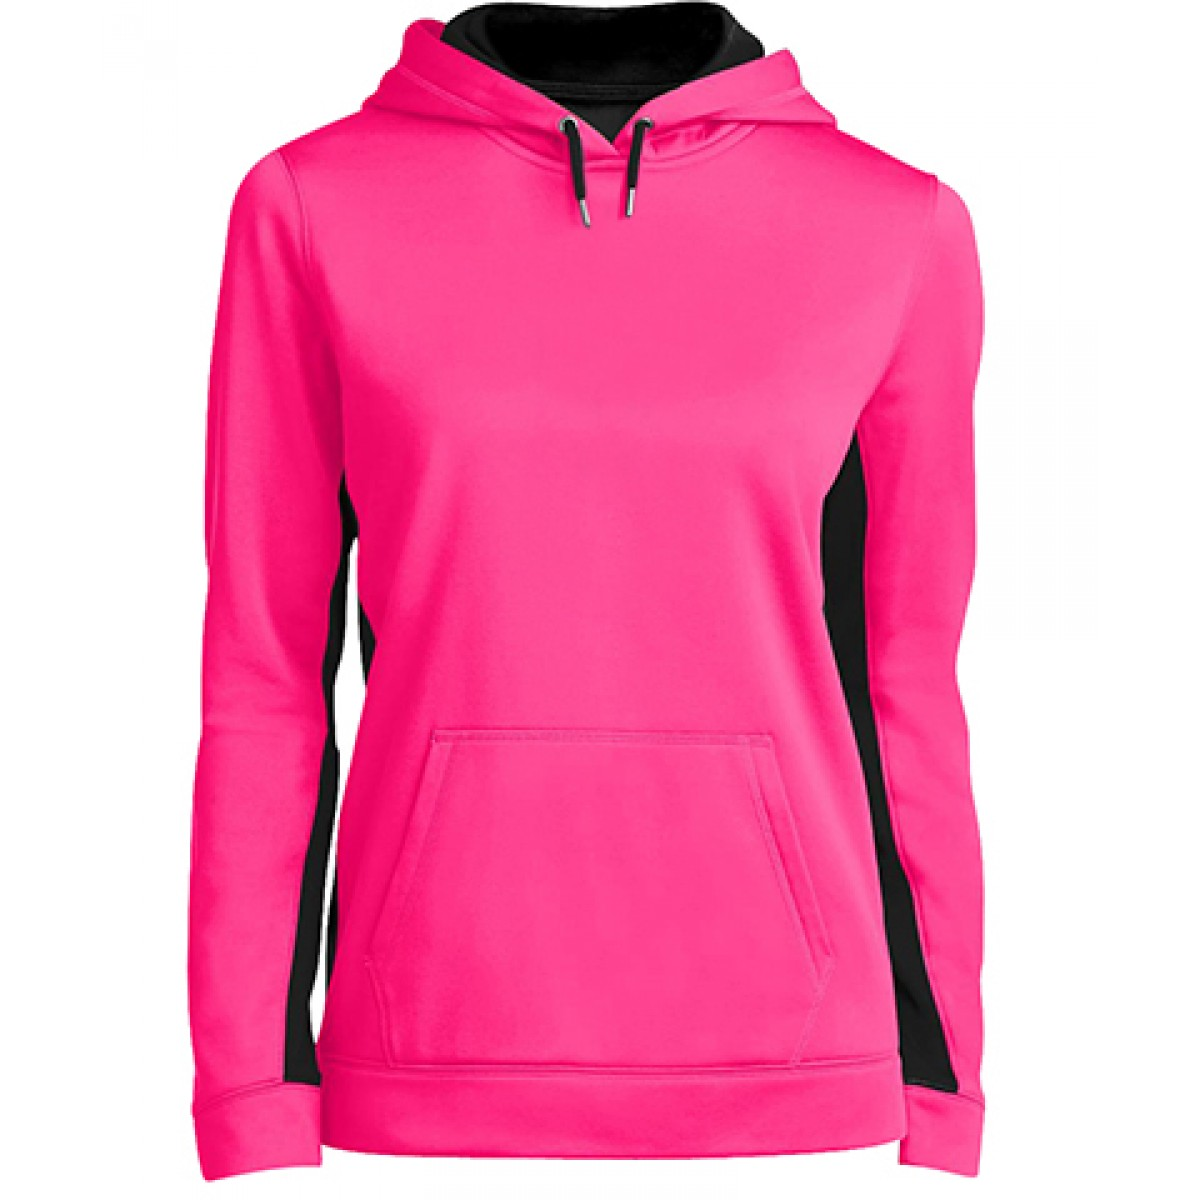 Ladies Colorblock Hooded Pullover-Neon Pink Black-M